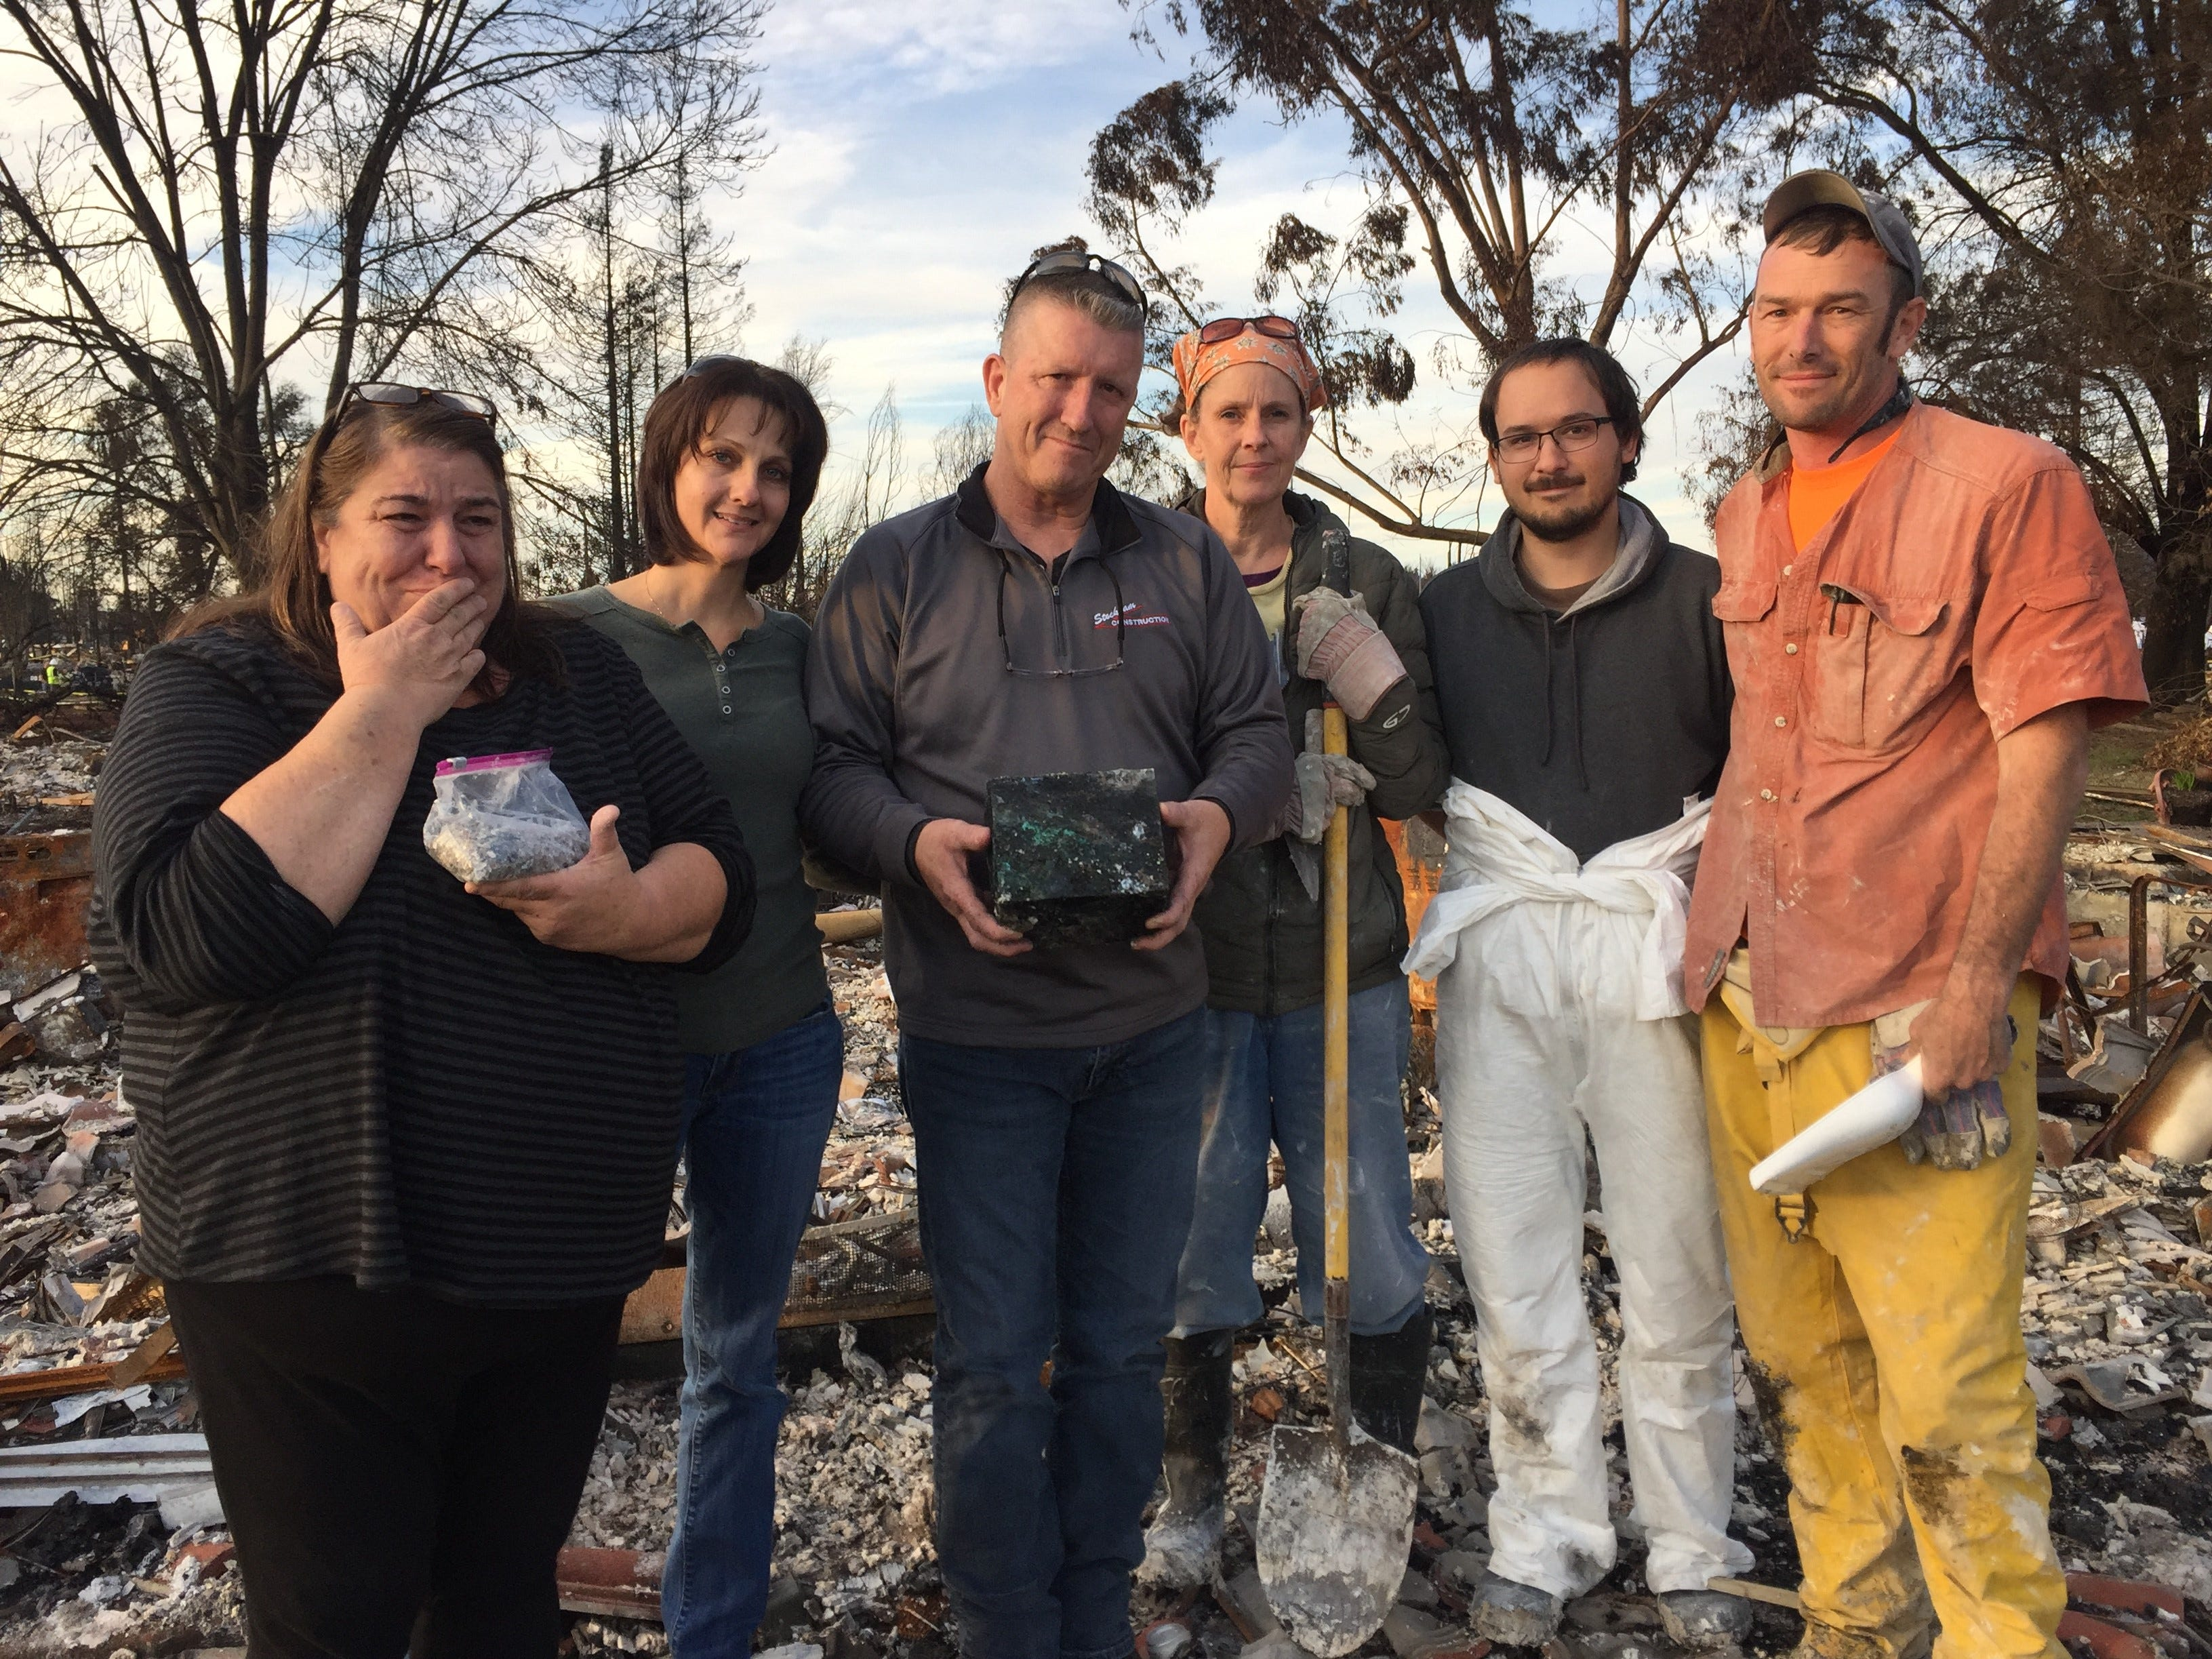 "Nick Rasmussen (third from left) holds his sister's cremains in a box. His sister Debbie Sandoval (left) holds their father's cremains in a bag while Rasmussen's wife Pamela Rasmussen comforts them. The team of archaeologists (three on the right) recovered the cremains after forensic dog ""Piper"" found them in the burned remains of their mother's Santa Rosa home."